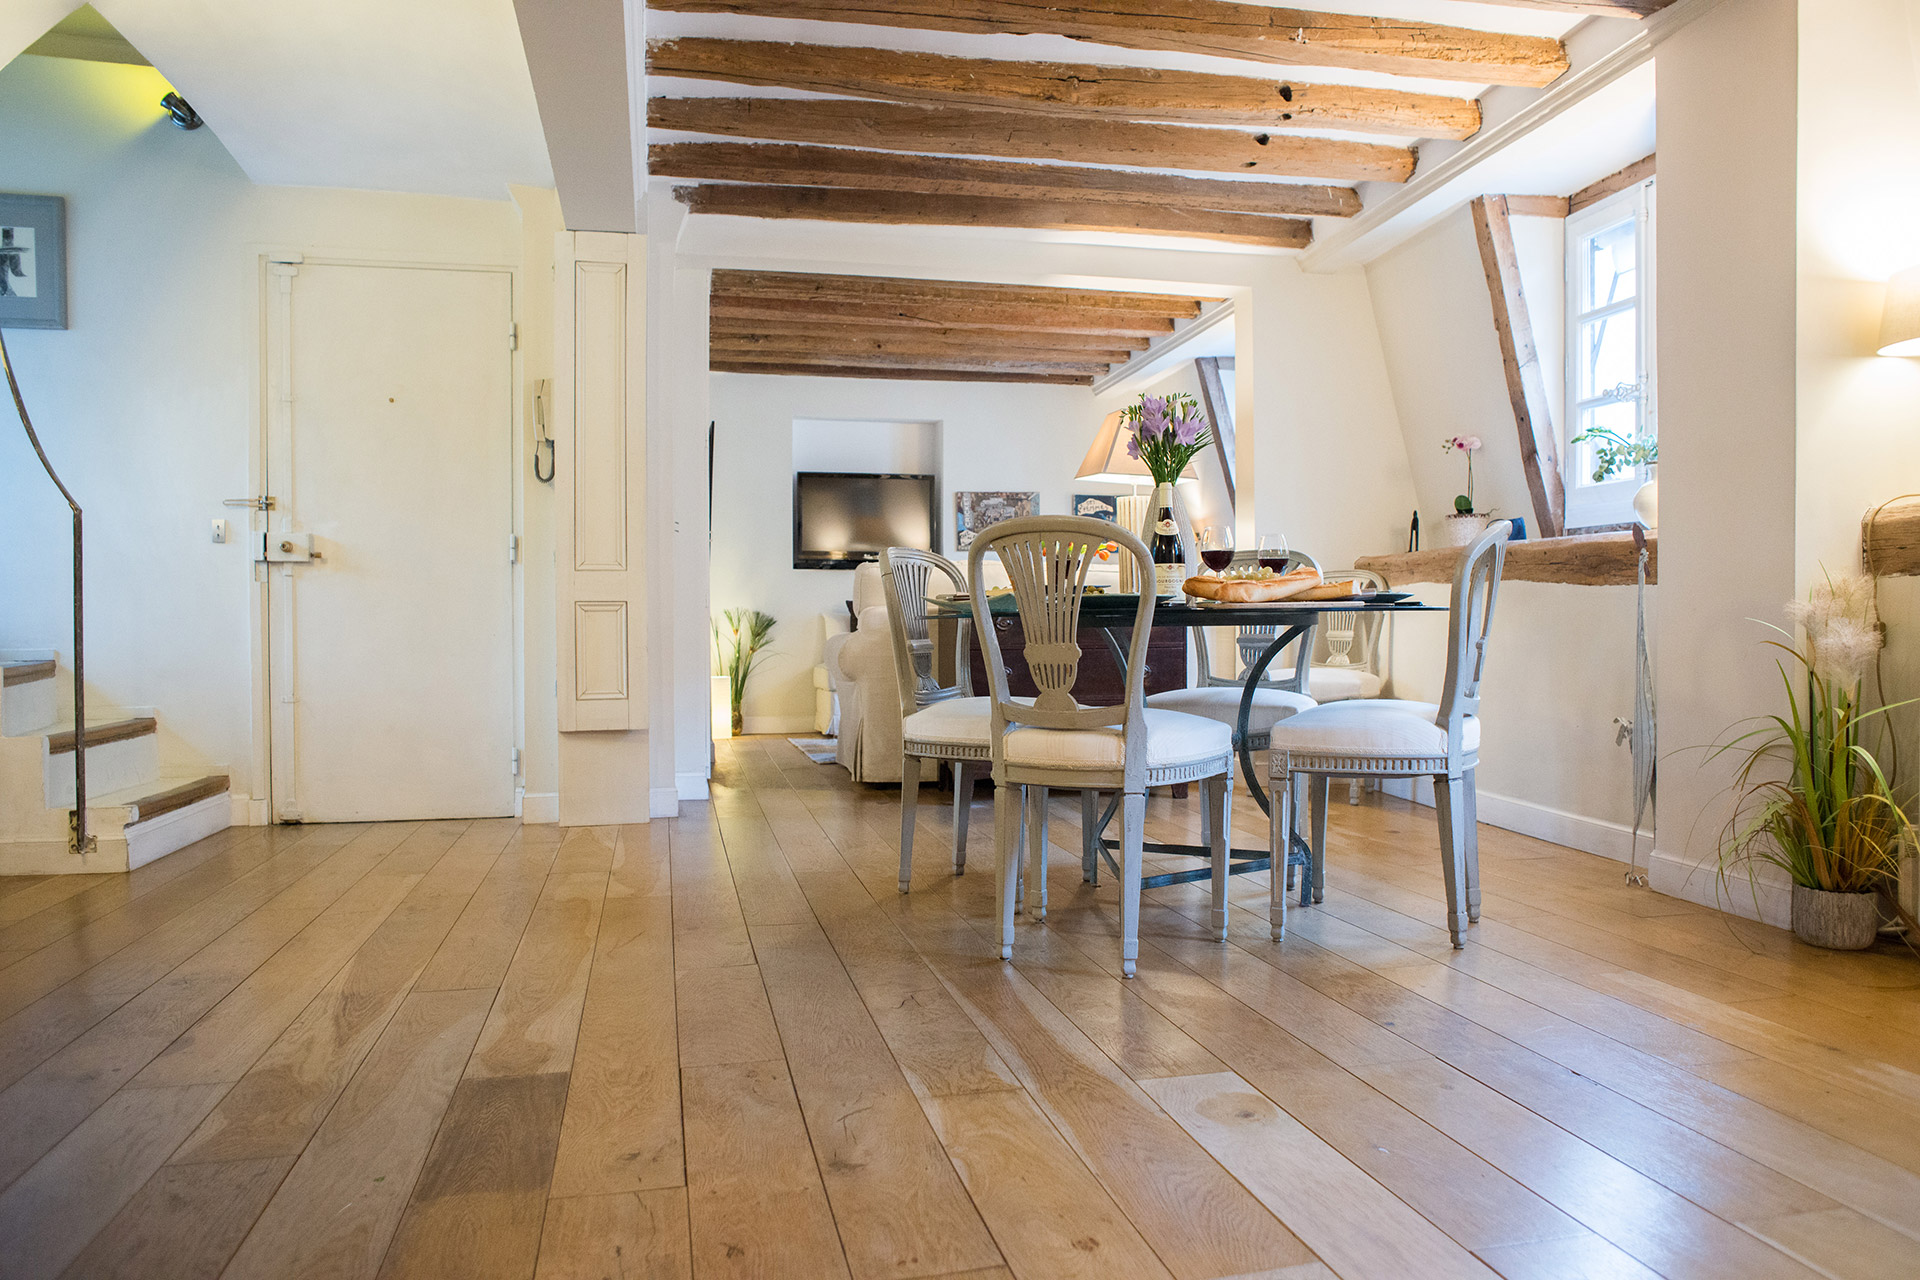 The spacious open-plan living and dining area of the Brittany vacation rental offered by Paris Perfect